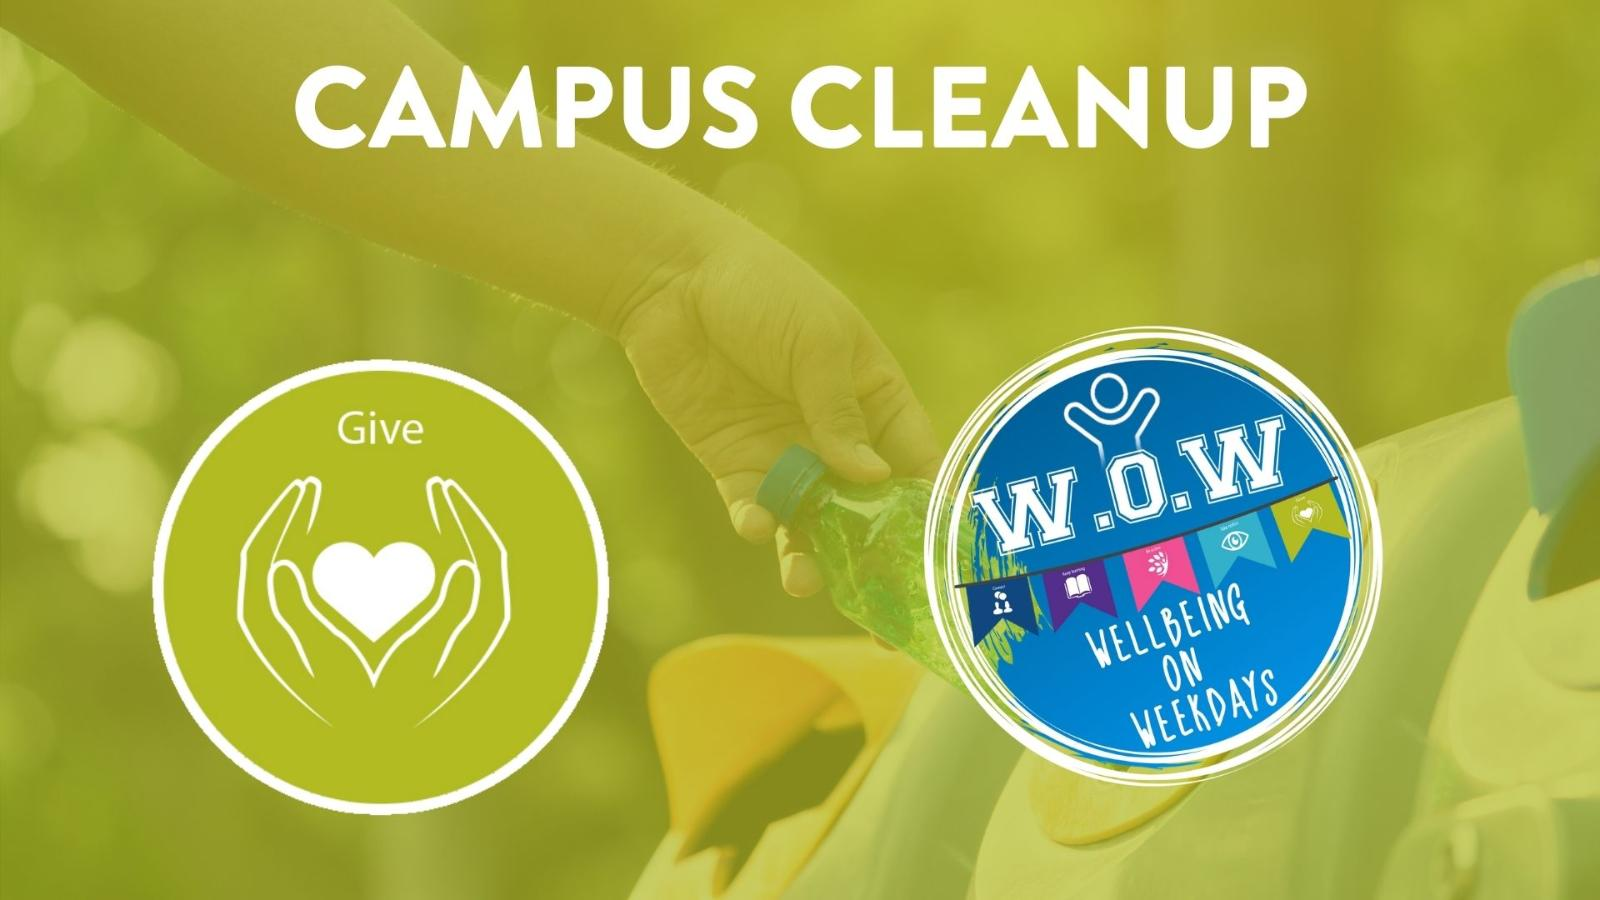 Event image for Campus Cleanup - Give